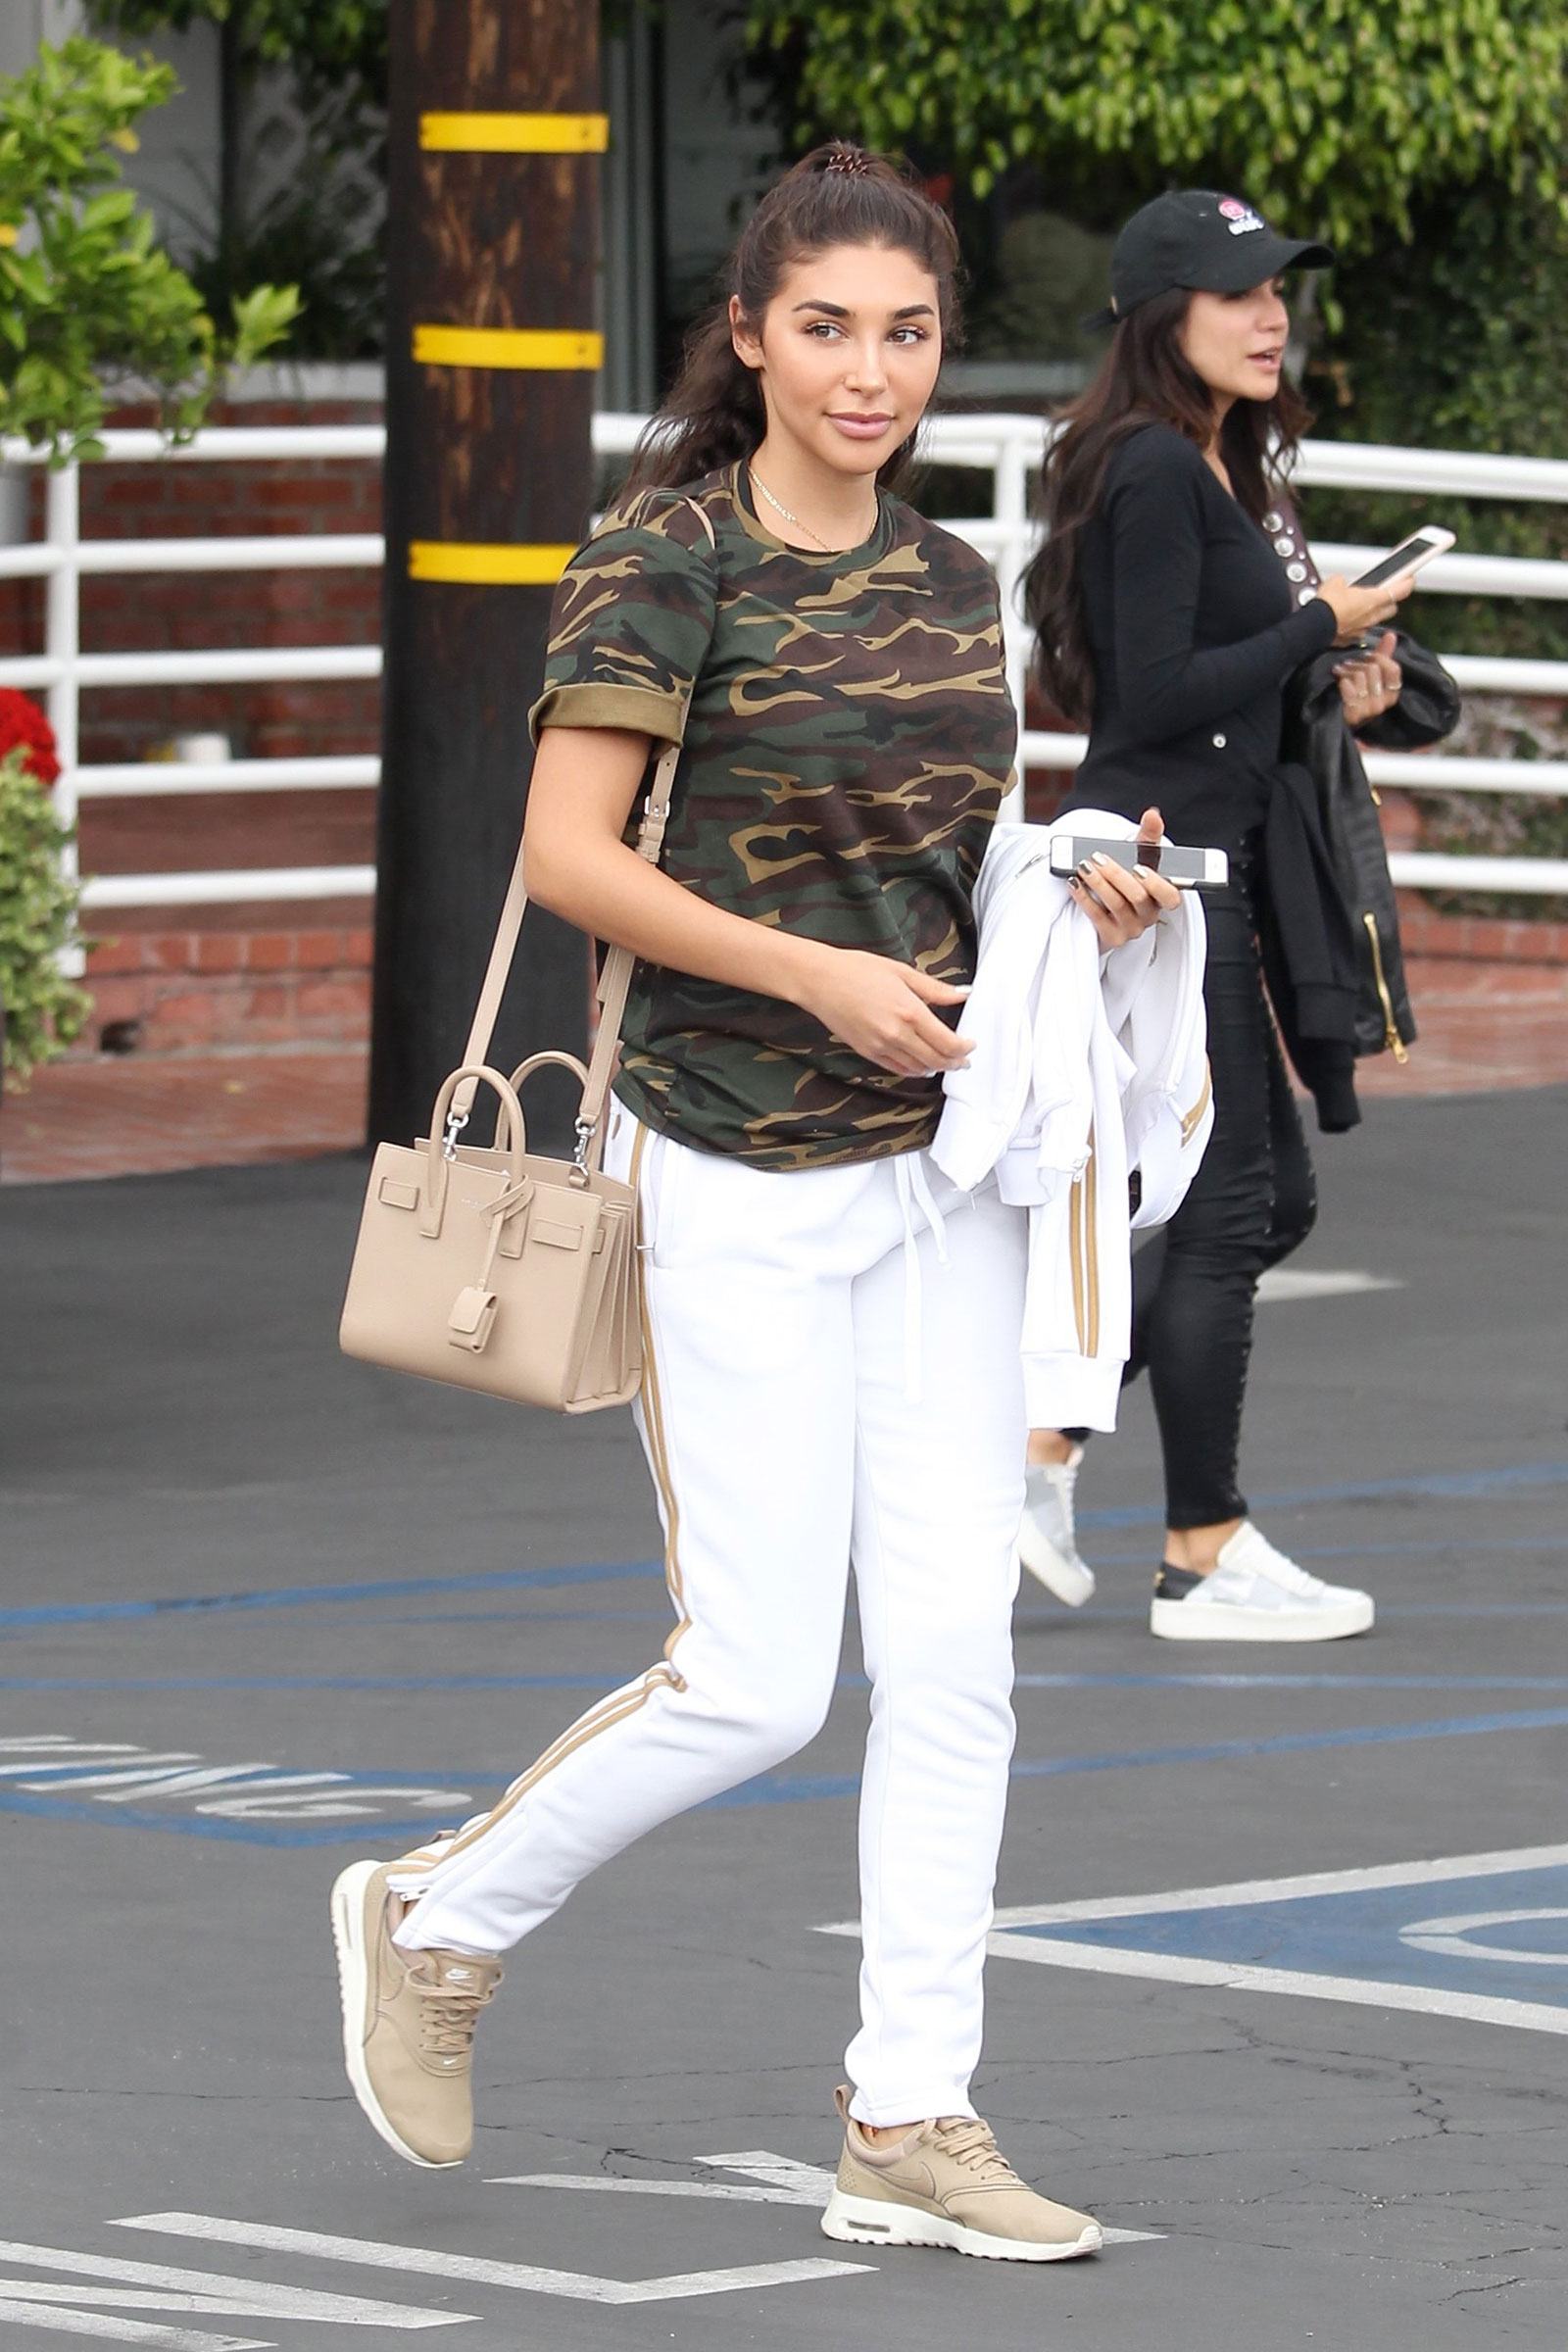 Here's a cute and casual summer outfit idea featuring a camo tee and white joggers.